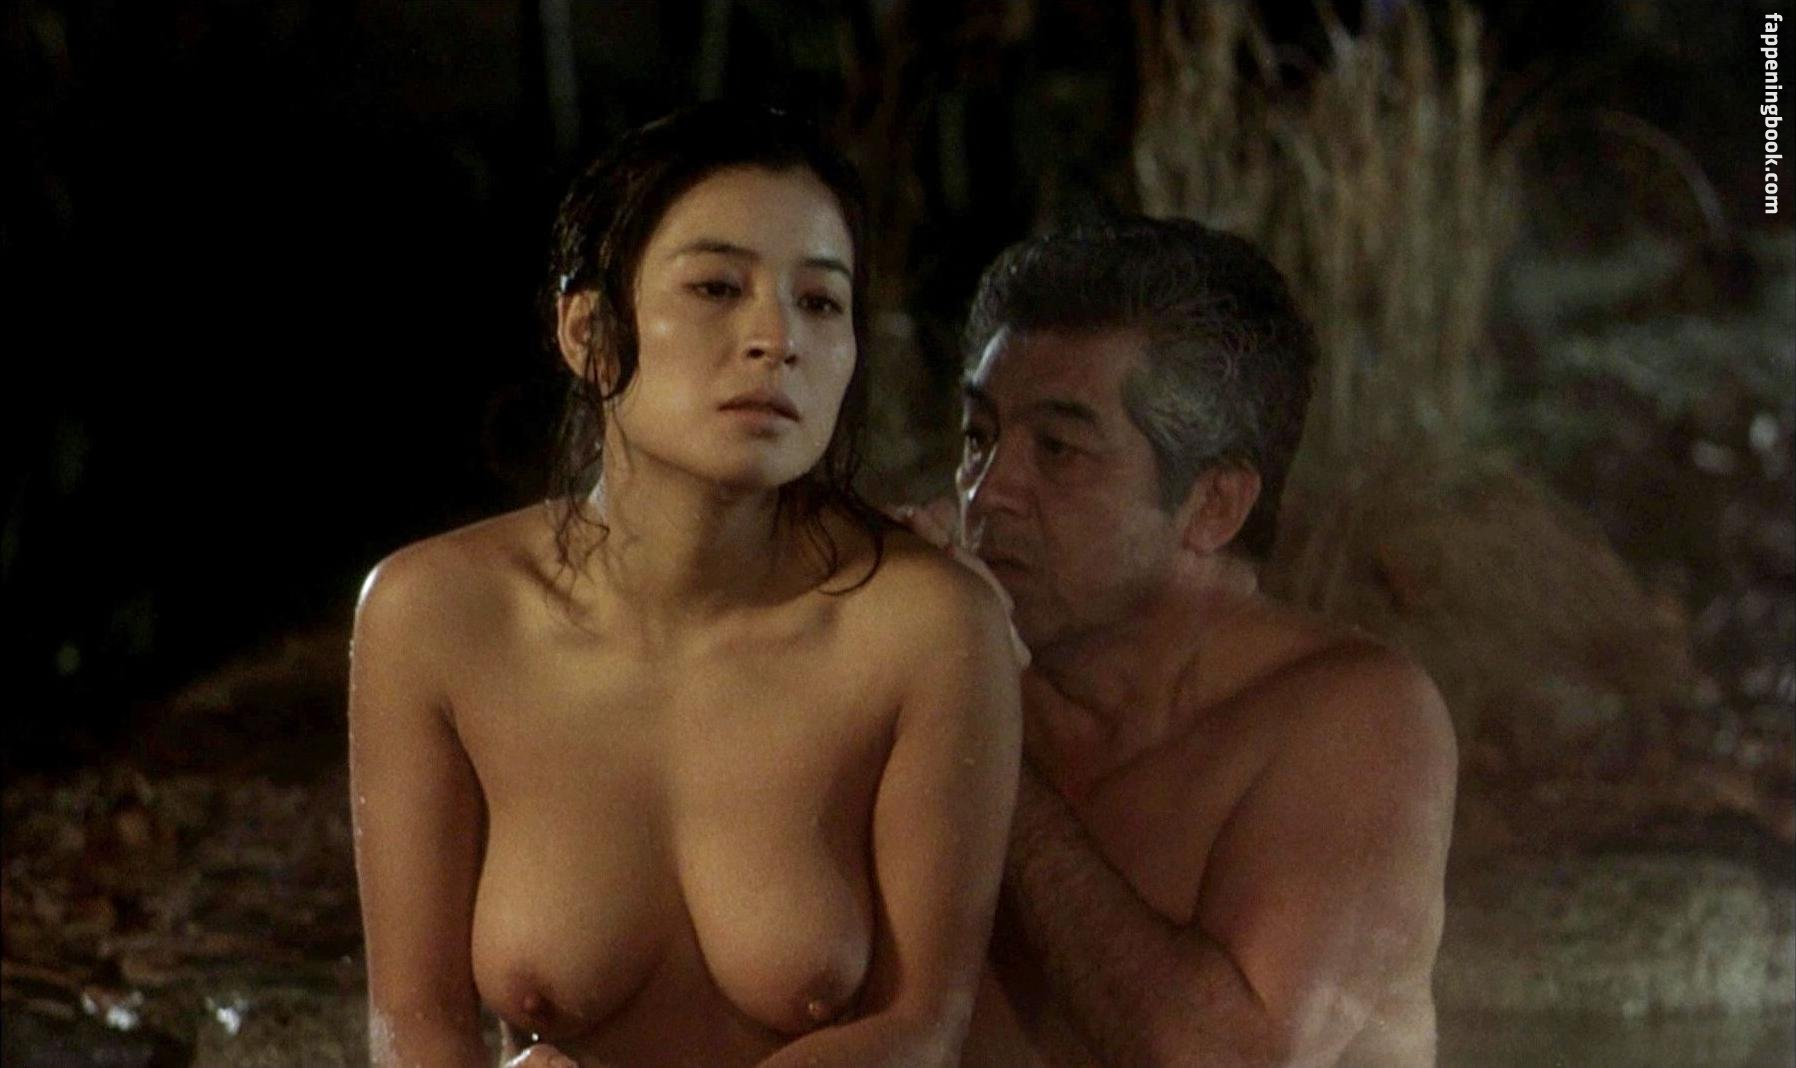 Cara Mitsuko Nude, Fappening, Sexy Photos, Uncensored